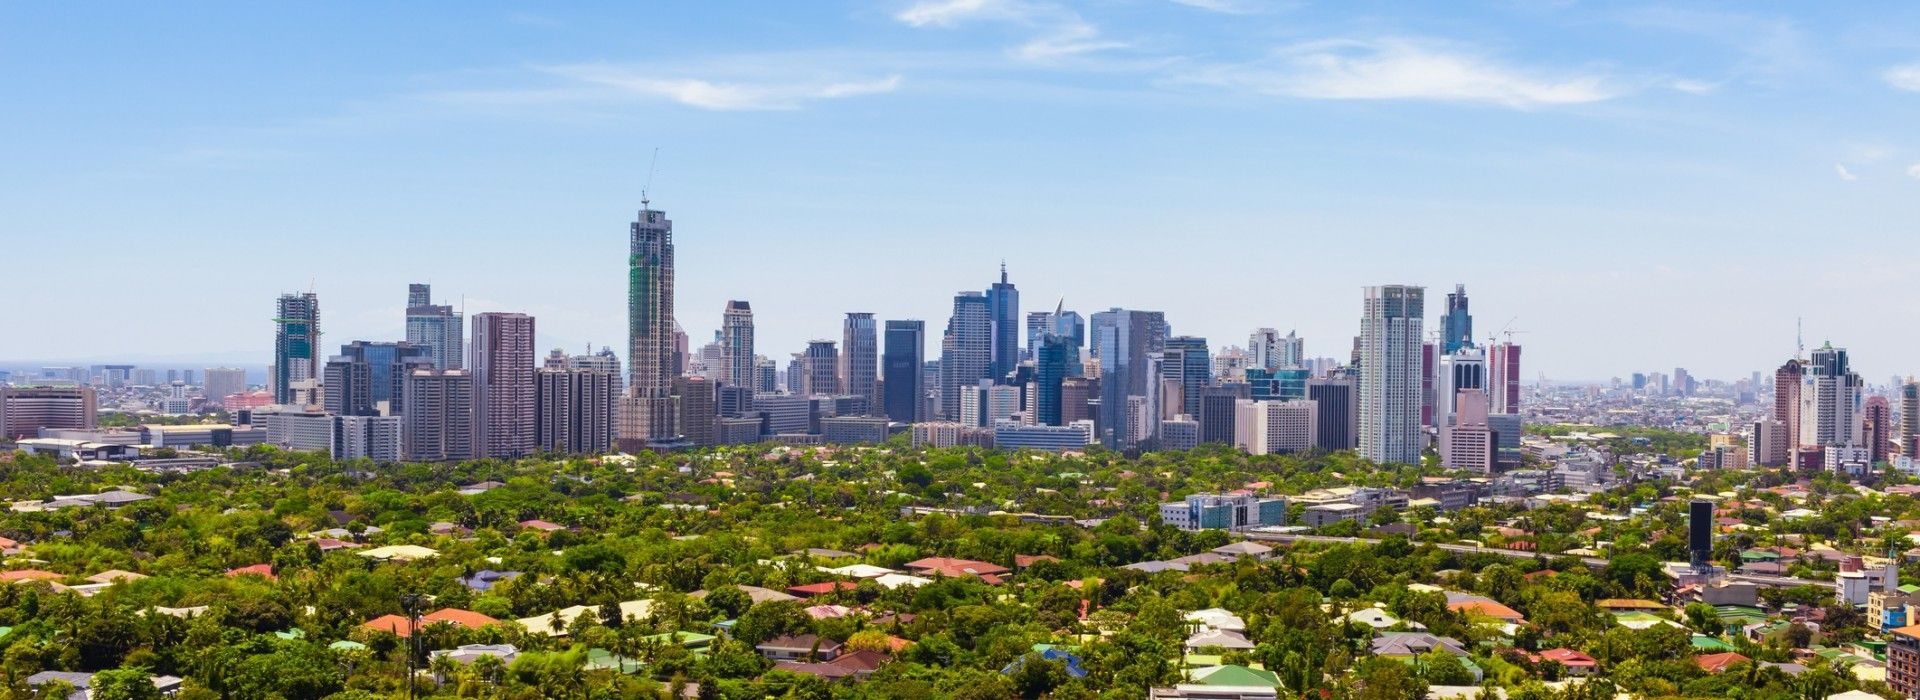 The beautiful metro Manila Skyline